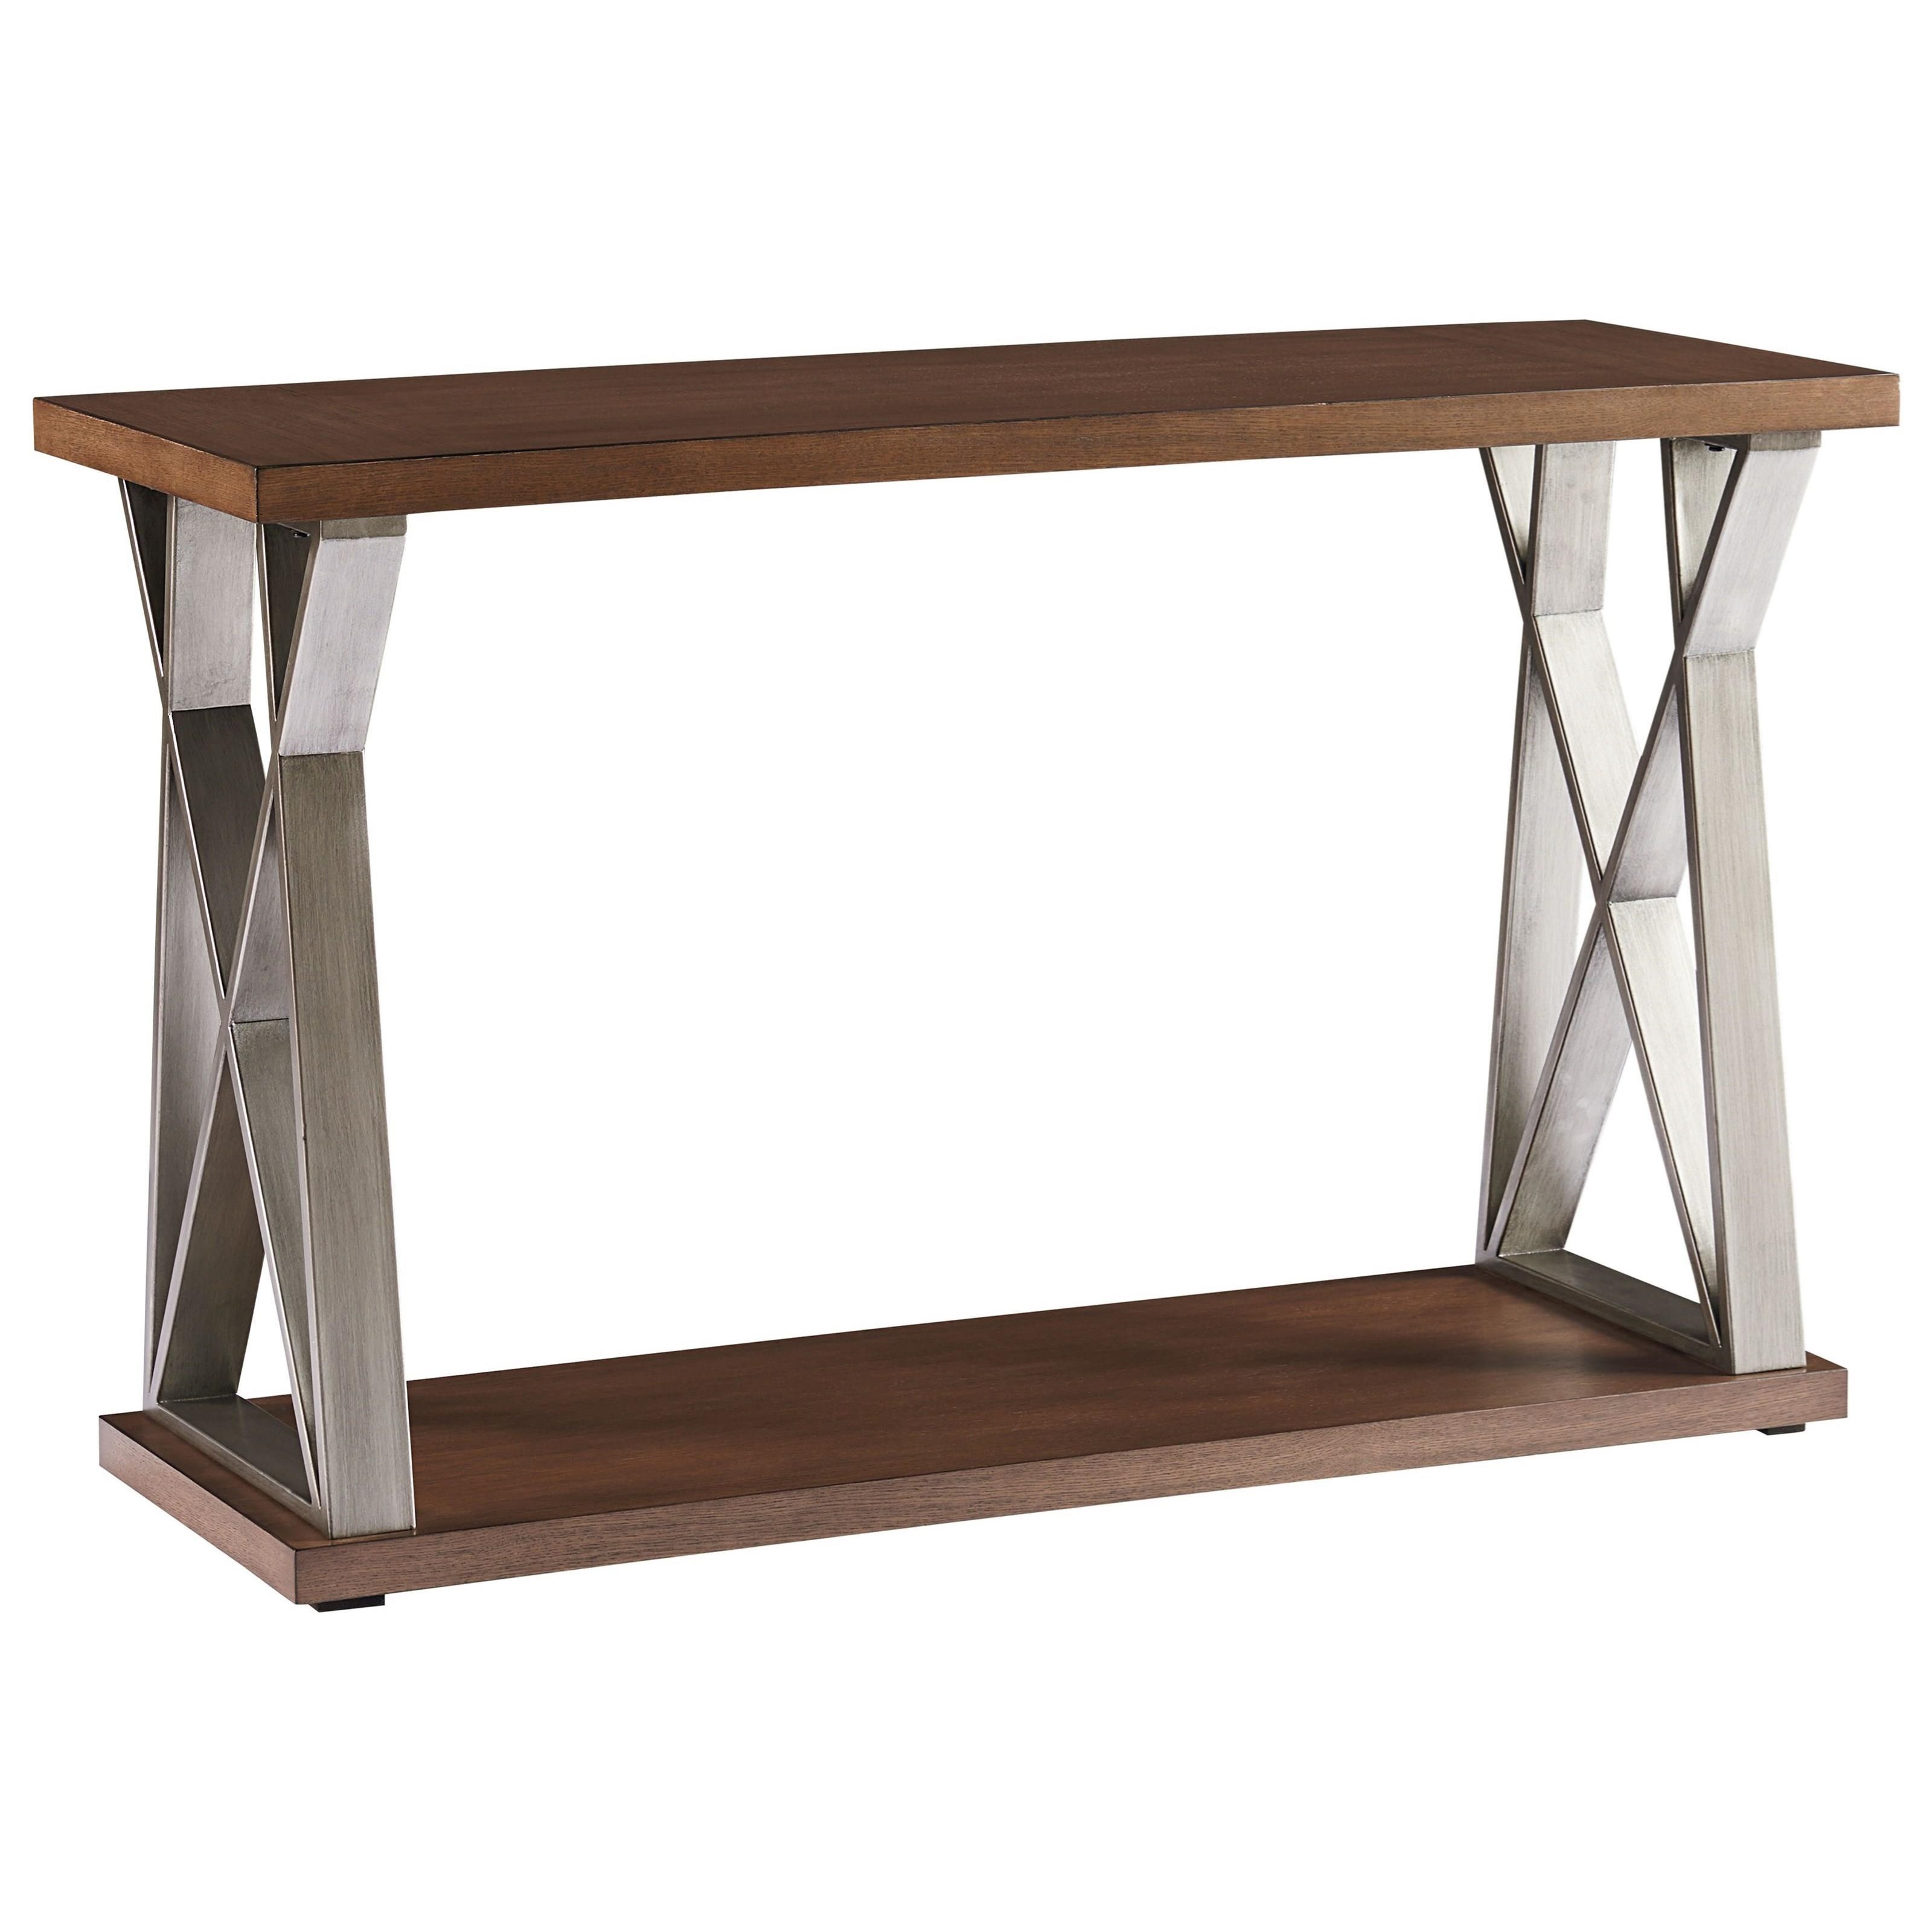 Standard Furniture Cumberland Console Table - Item Number: 29966